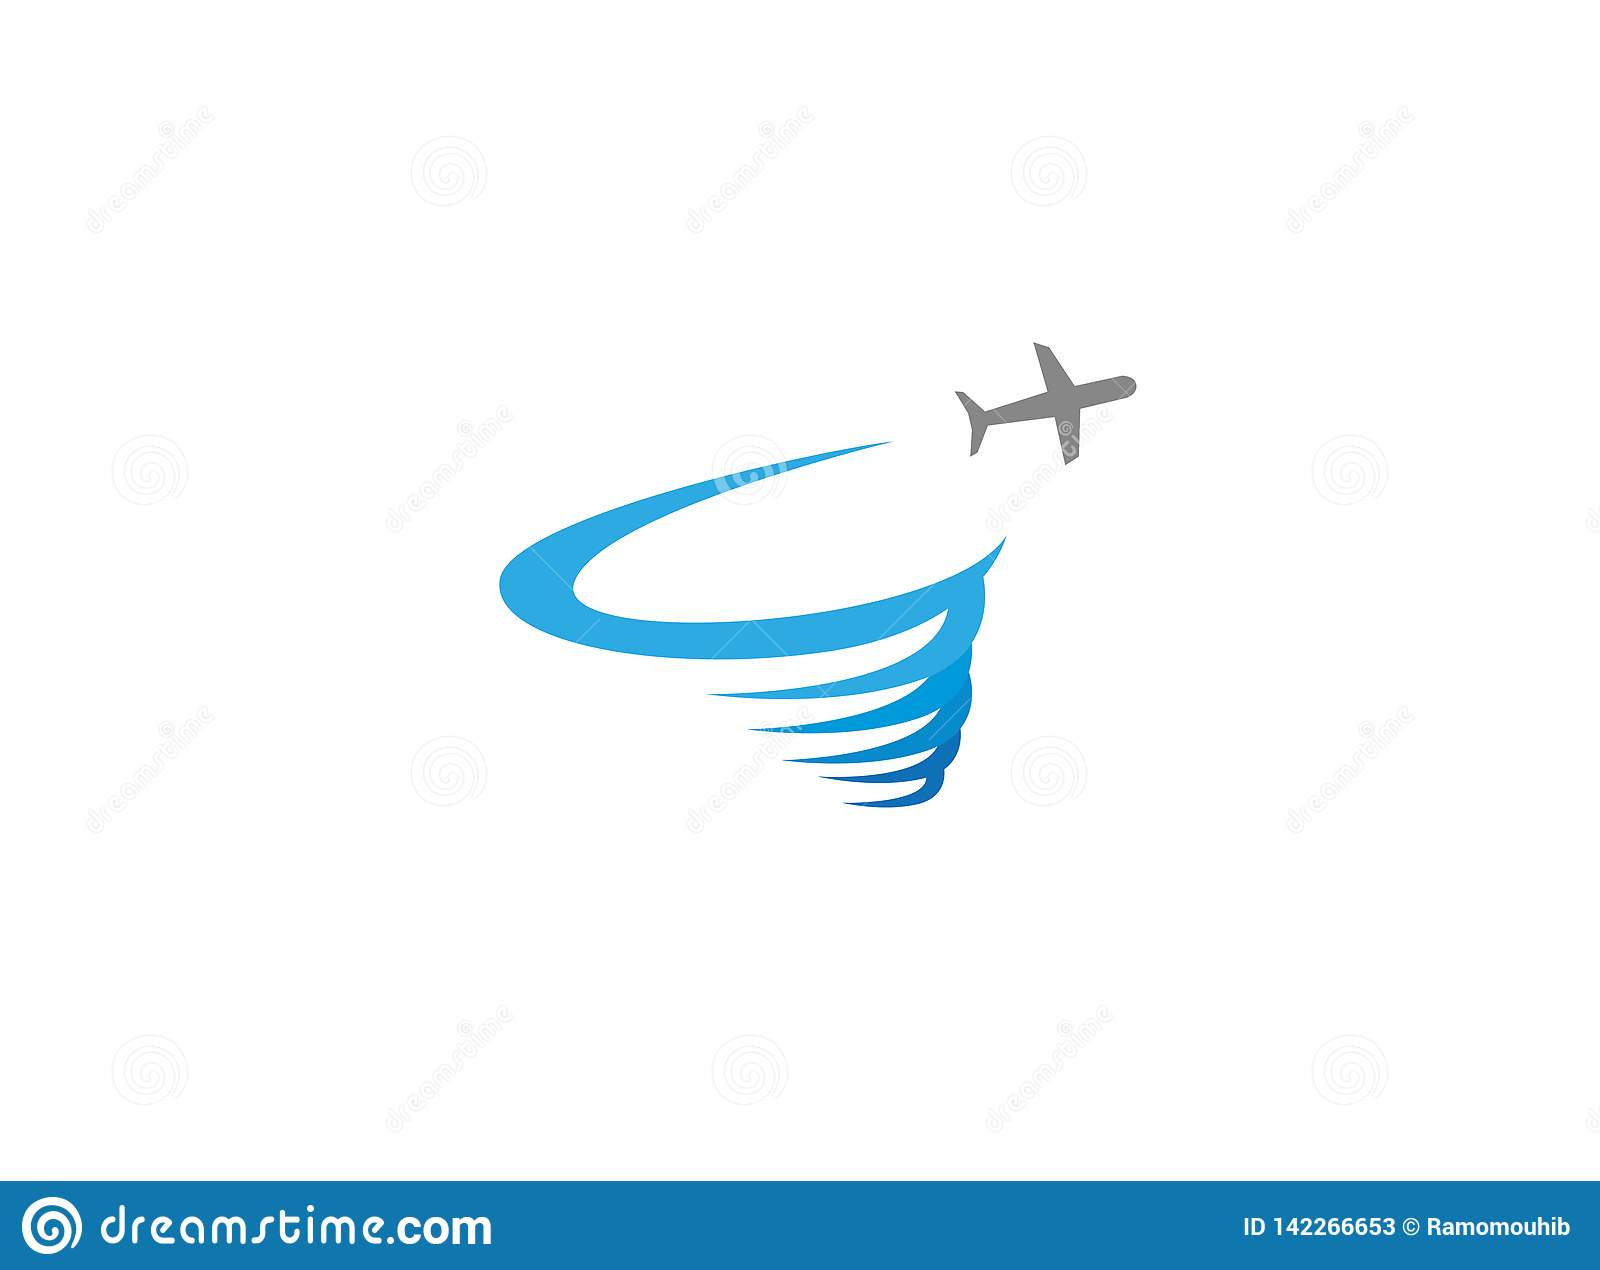 Plane flying and making a round storm logo